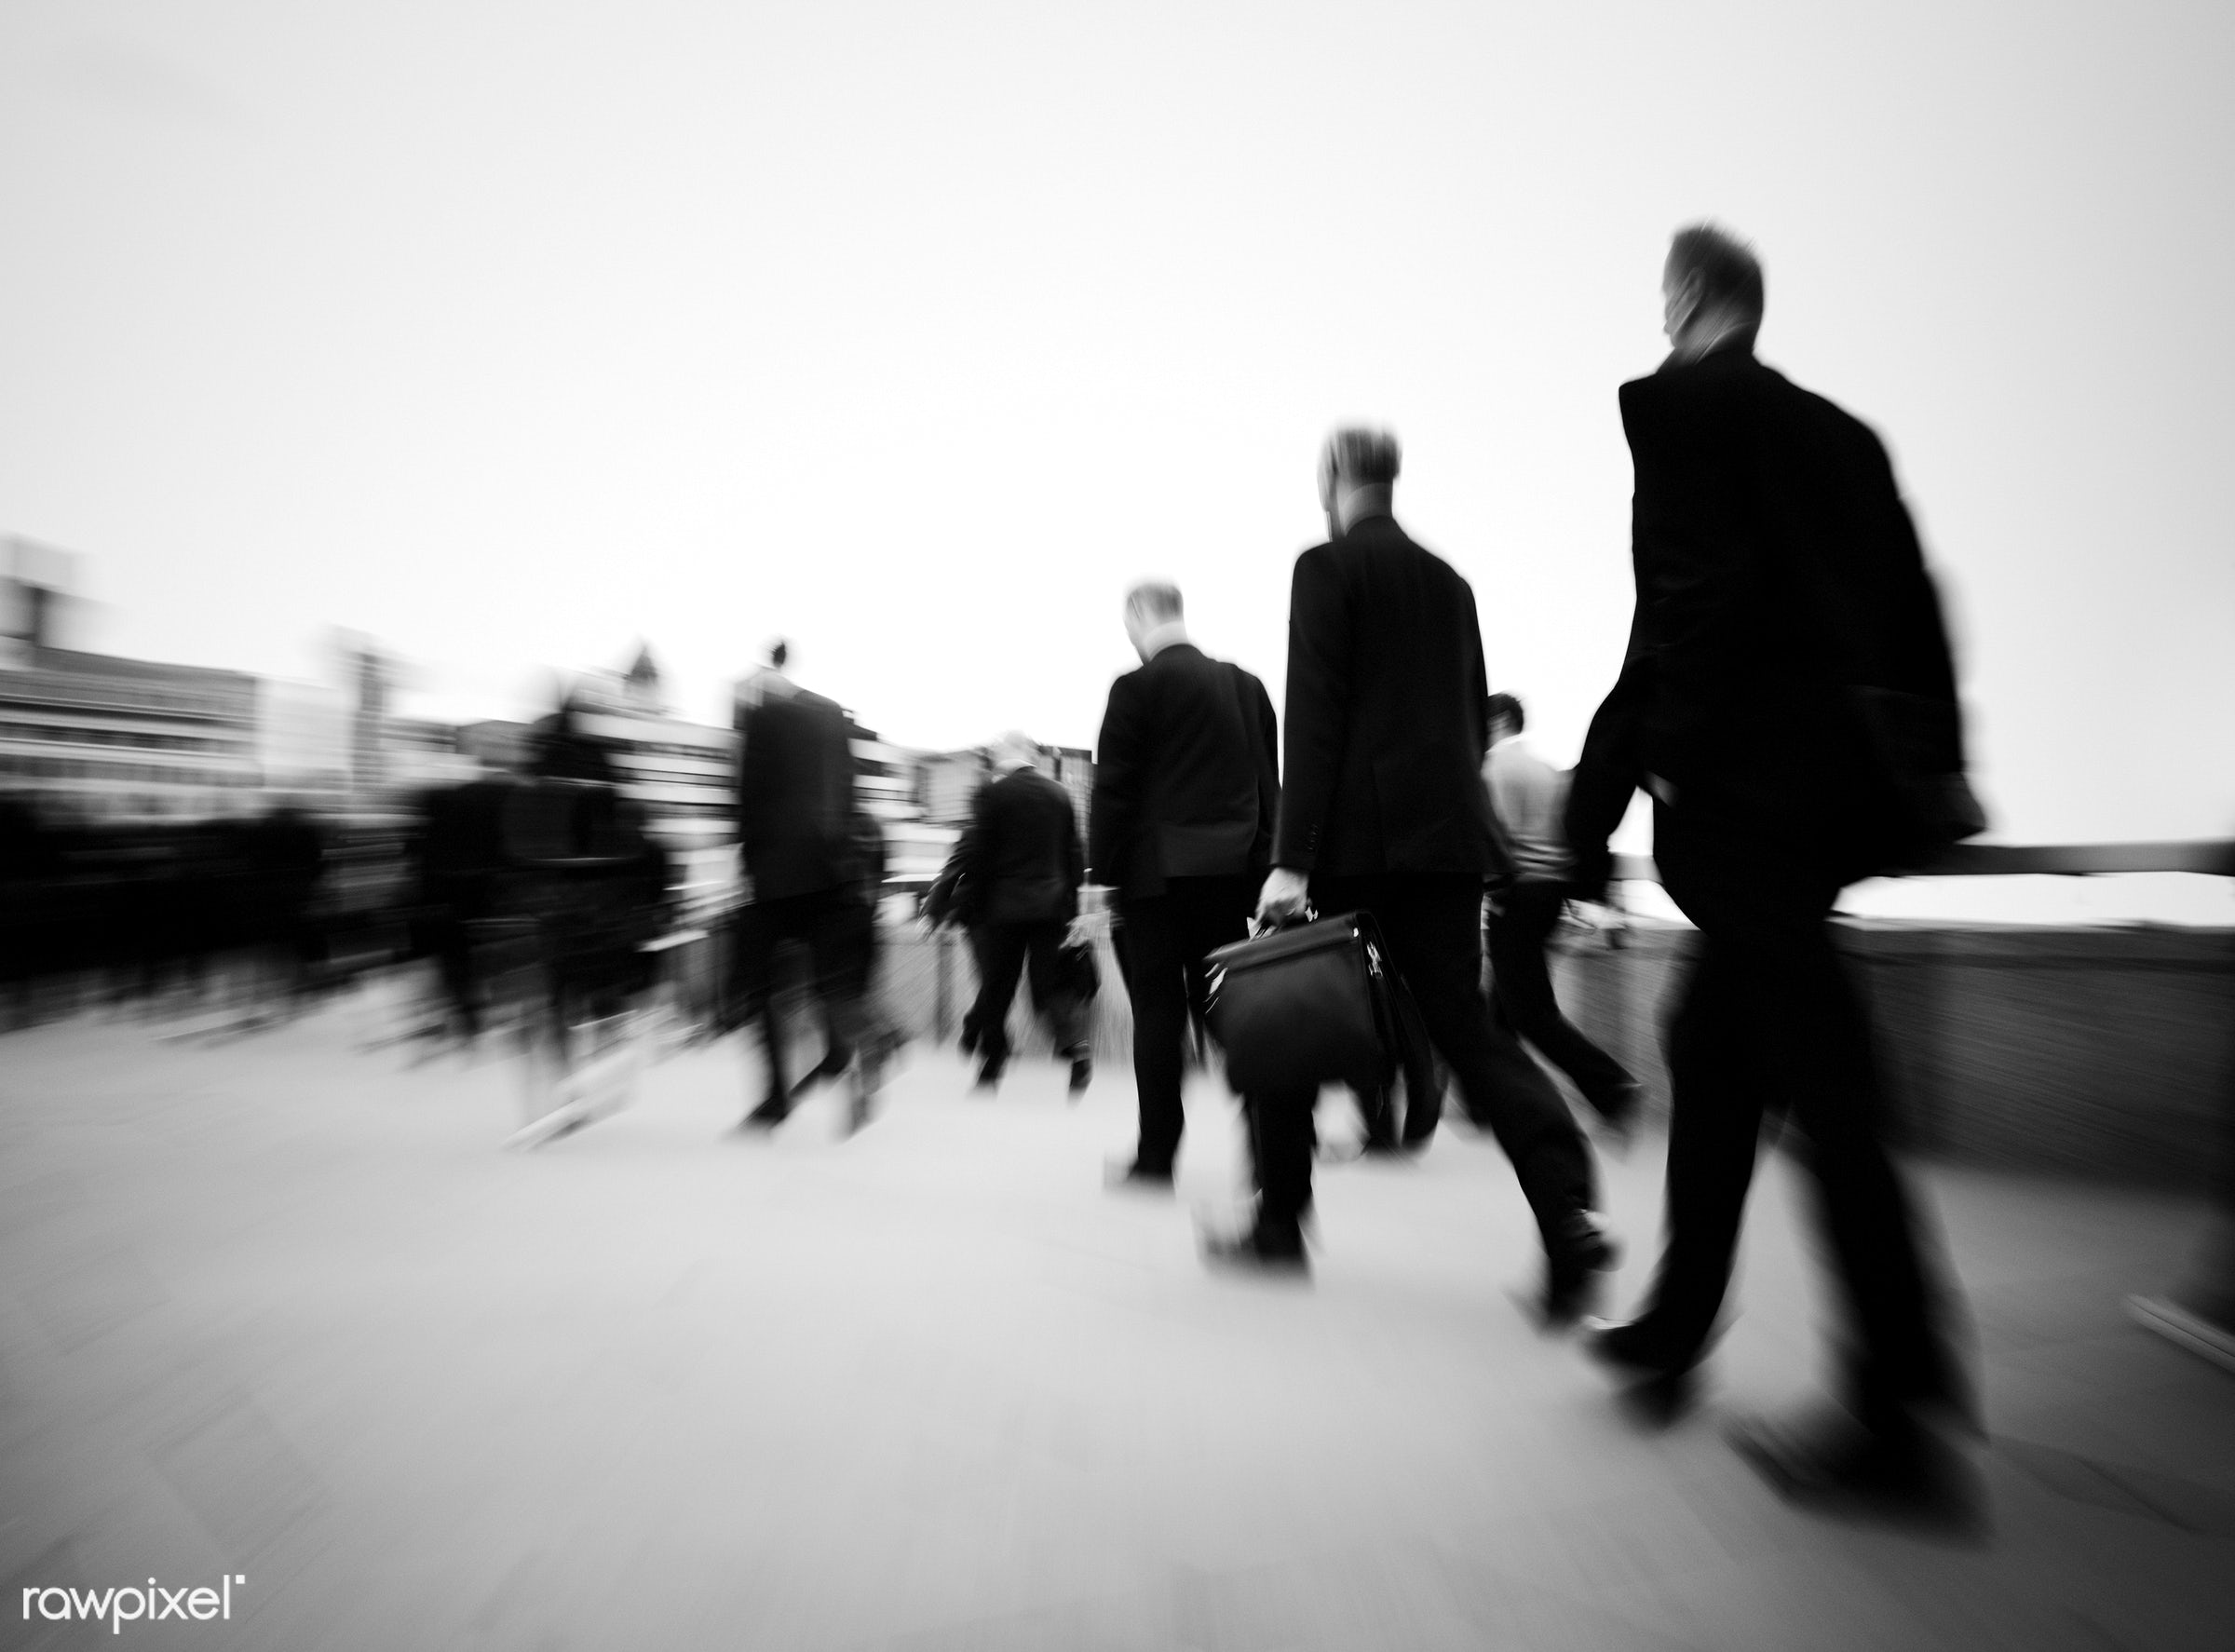 Morning commuters Of London - business, london, city, suit, abstract, black and white, blurred motion, britain, business...